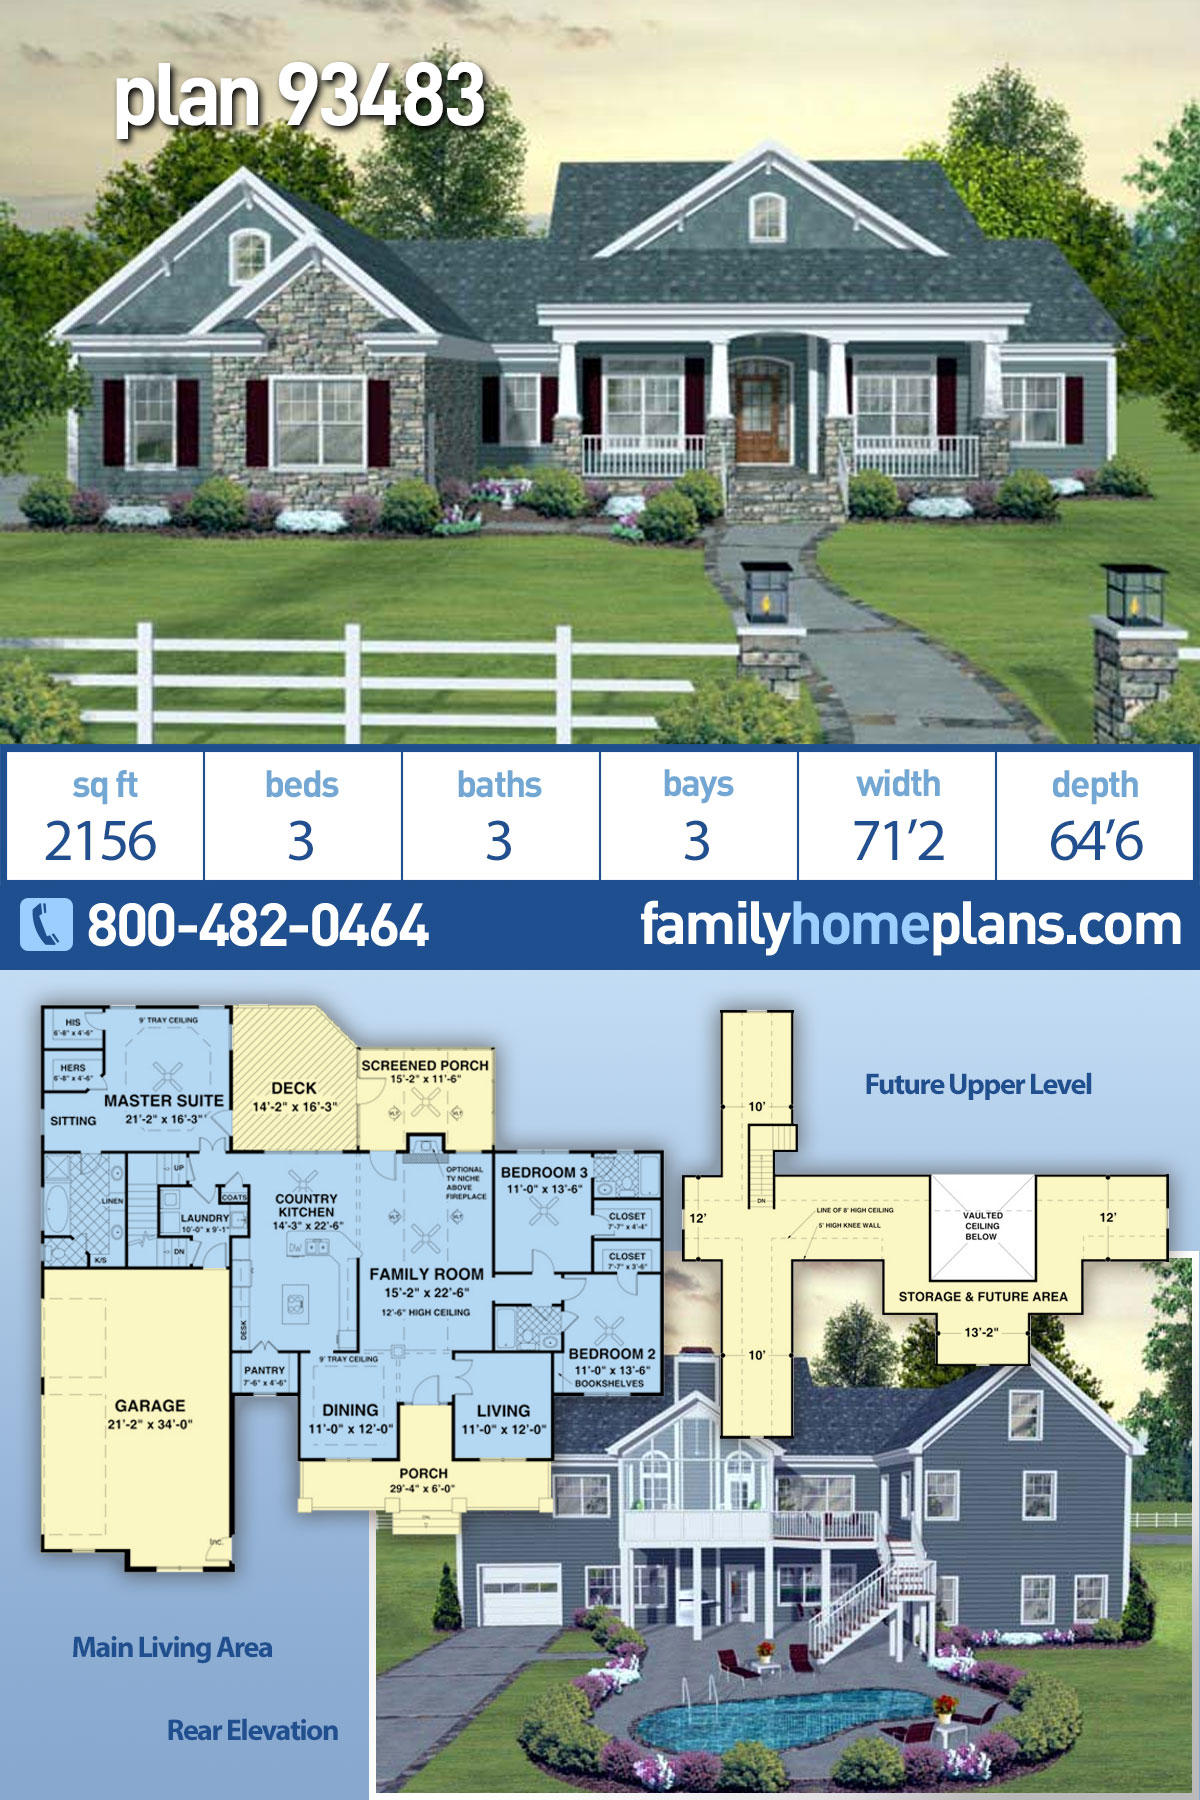 Craftsman, European, Traditional House Plan 93483 with 3 Beds, 3 Baths, 3 Car Garage